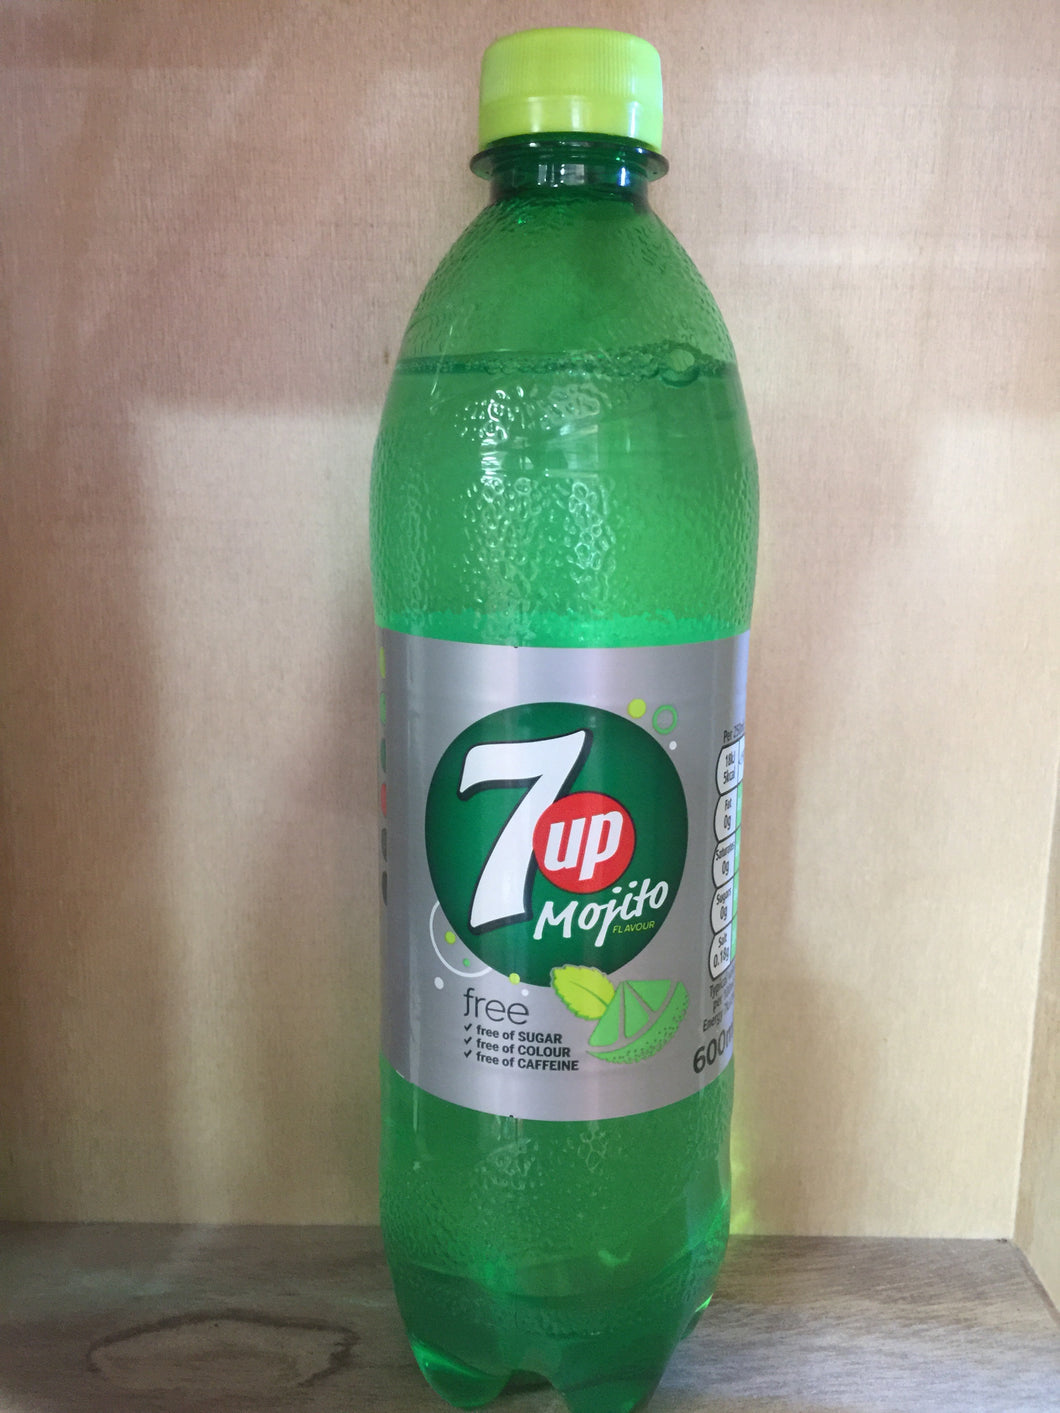 7up Mojito Sugar Free 600ml